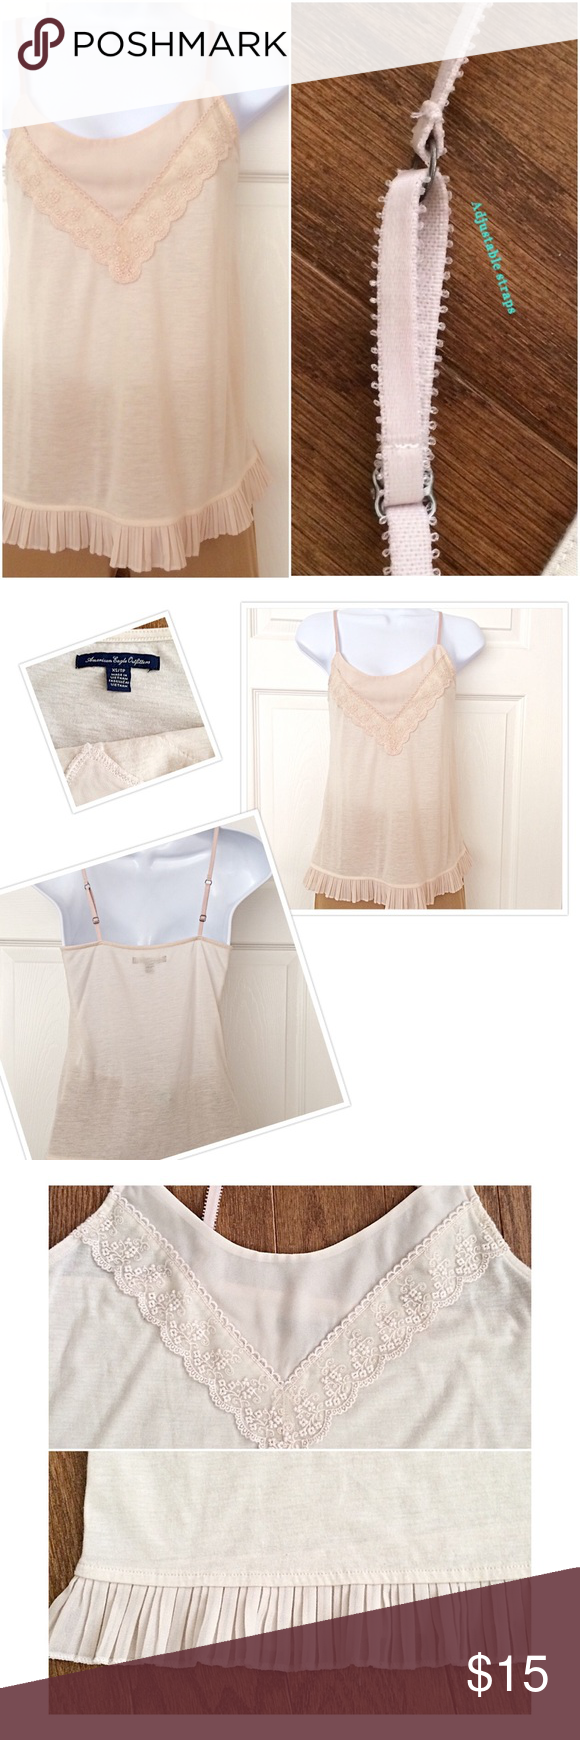 """AMERICAN EAGLE OUTFITTERS Beautiful Strap Top A really nice top. Soft, smooth,  lightweight Cotton blend & sheer   fabric tank top with adjustable bra strap. Adjusts from length 22""""-24"""". Width underarm to underarm 14"""". Lace & sheer ivory beige add detail on a curved neckline. To finish a sheer ruffle to waist. Looks great with jeans, trousers or a skirt American Eagle Outfitters Tops Tank Tops"""